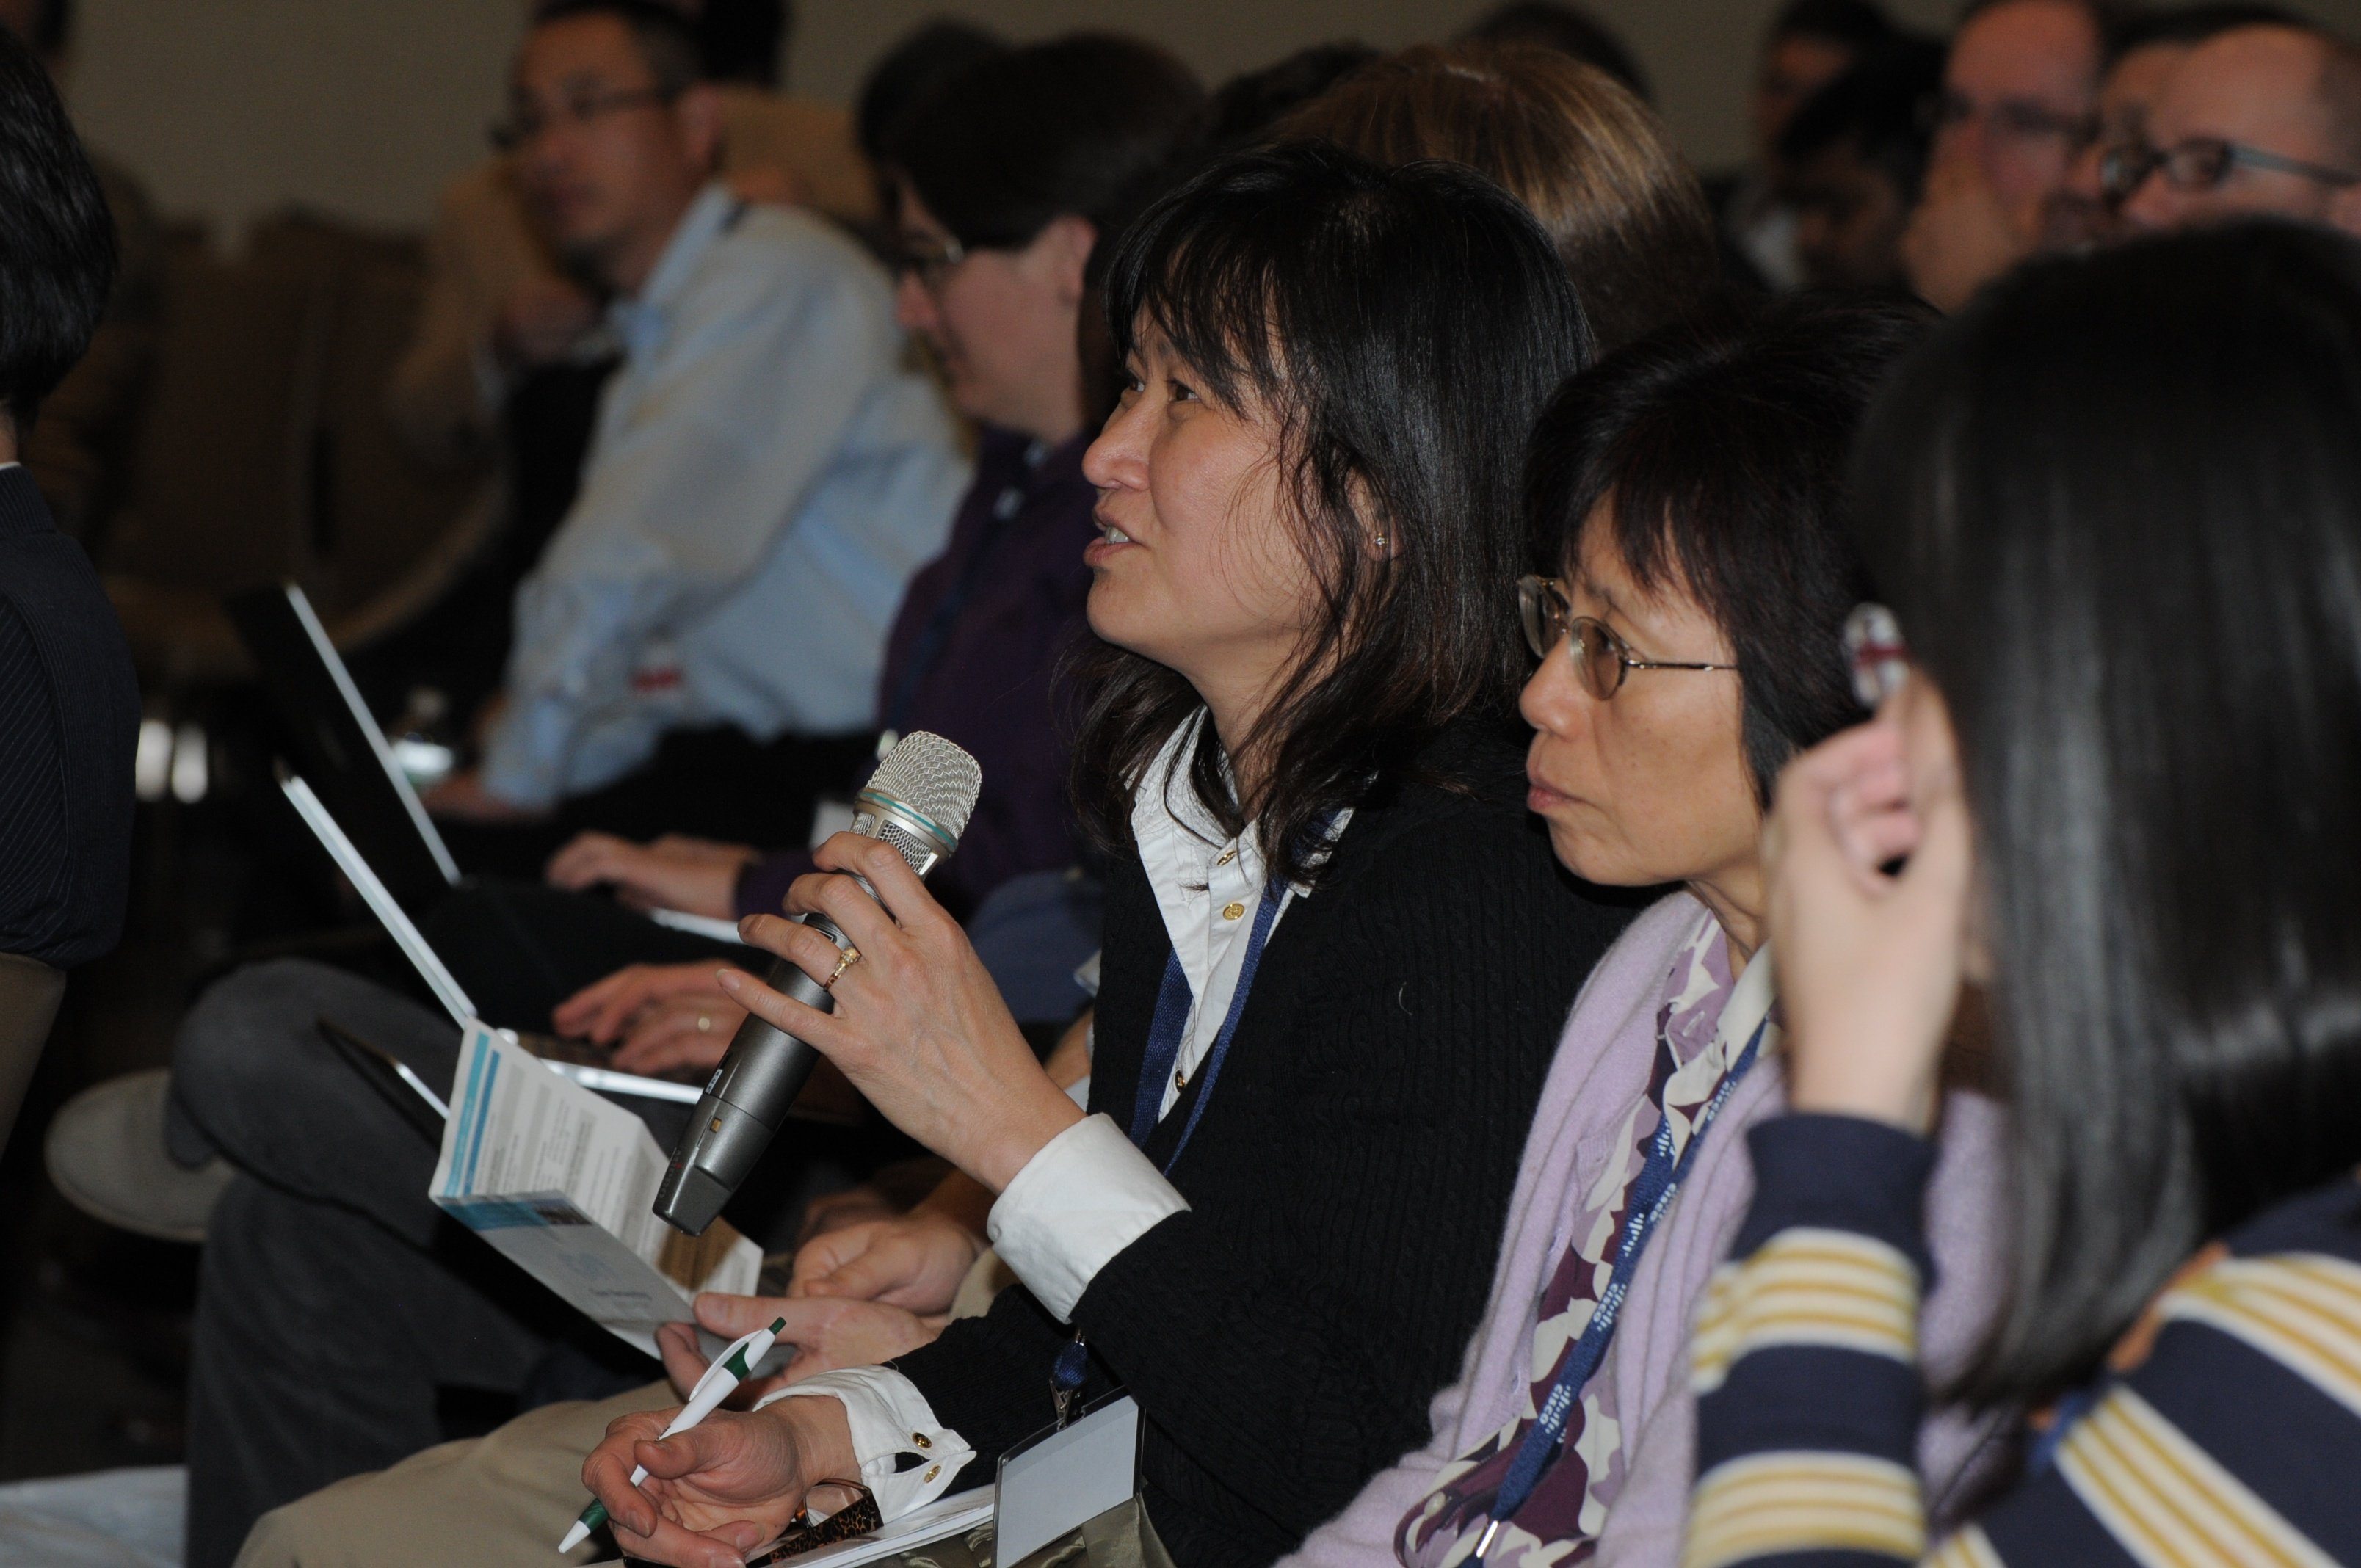 Another audience member gets in on the discussion during the Glue Networks and McAfee luncheon partnership session